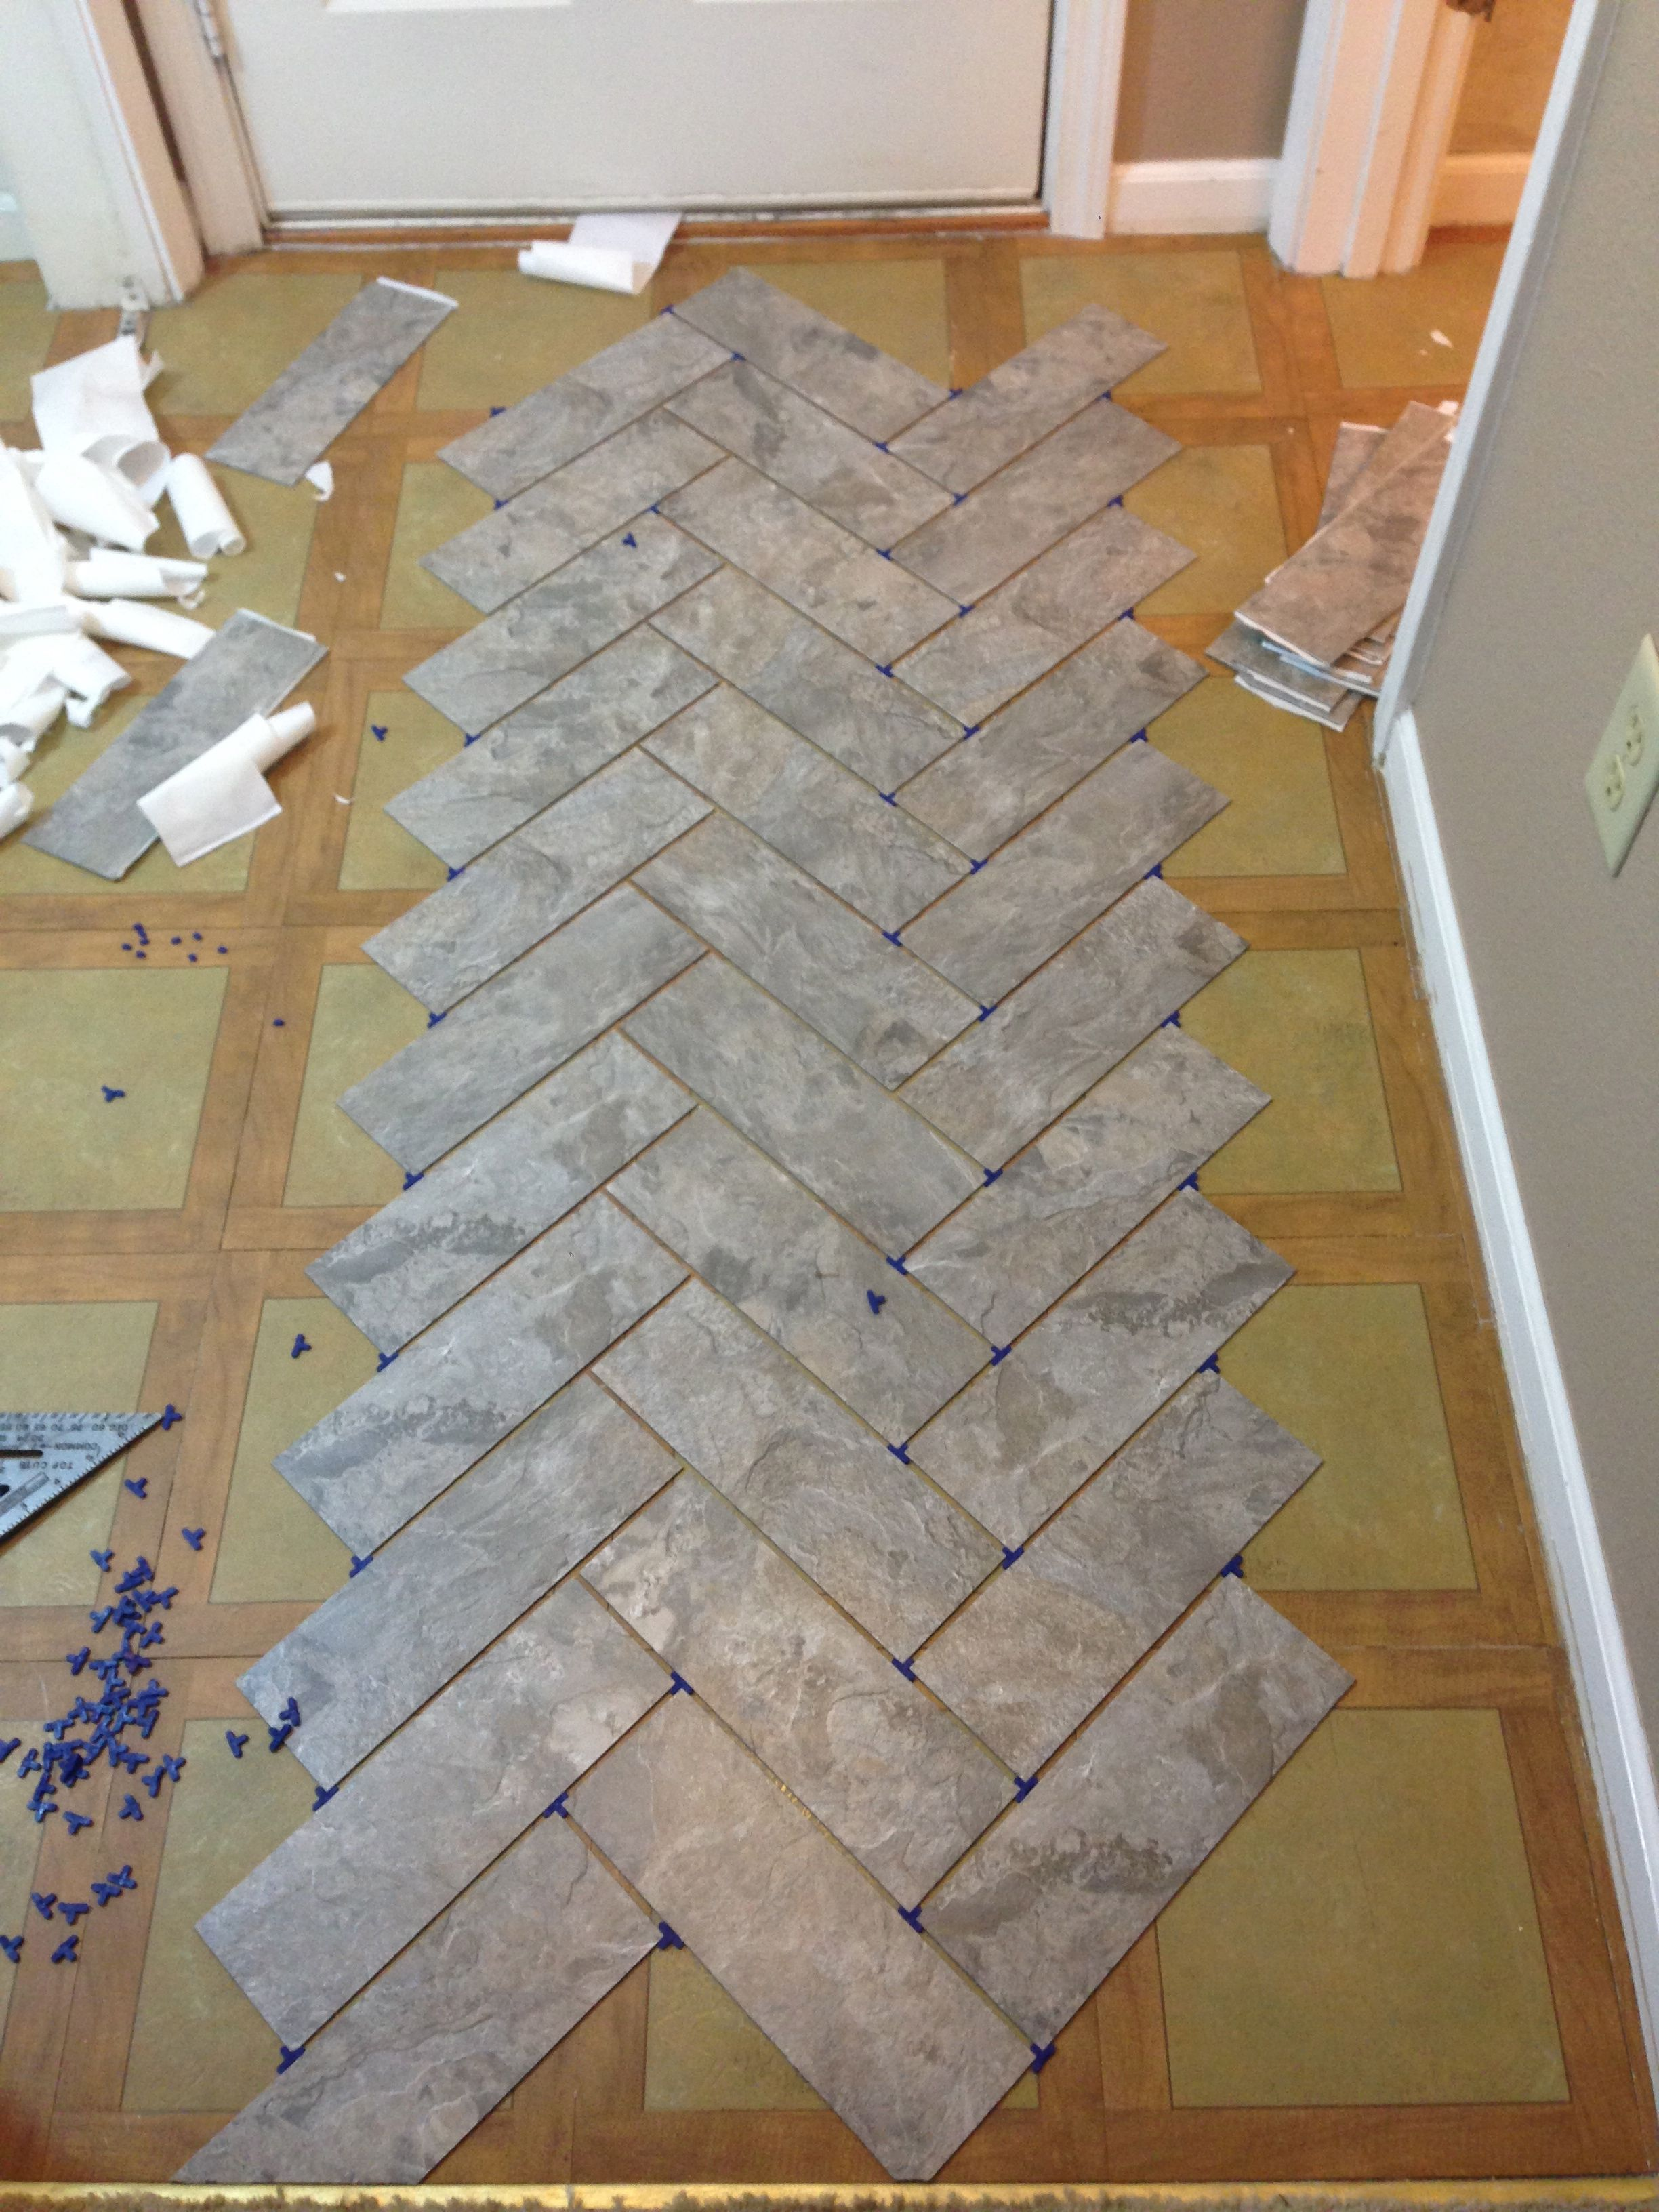 Vinyl Tiles For Kitchen Floor Diy Herringbone Vinyl Tile Pattern Via Grace Gumption Kitchen